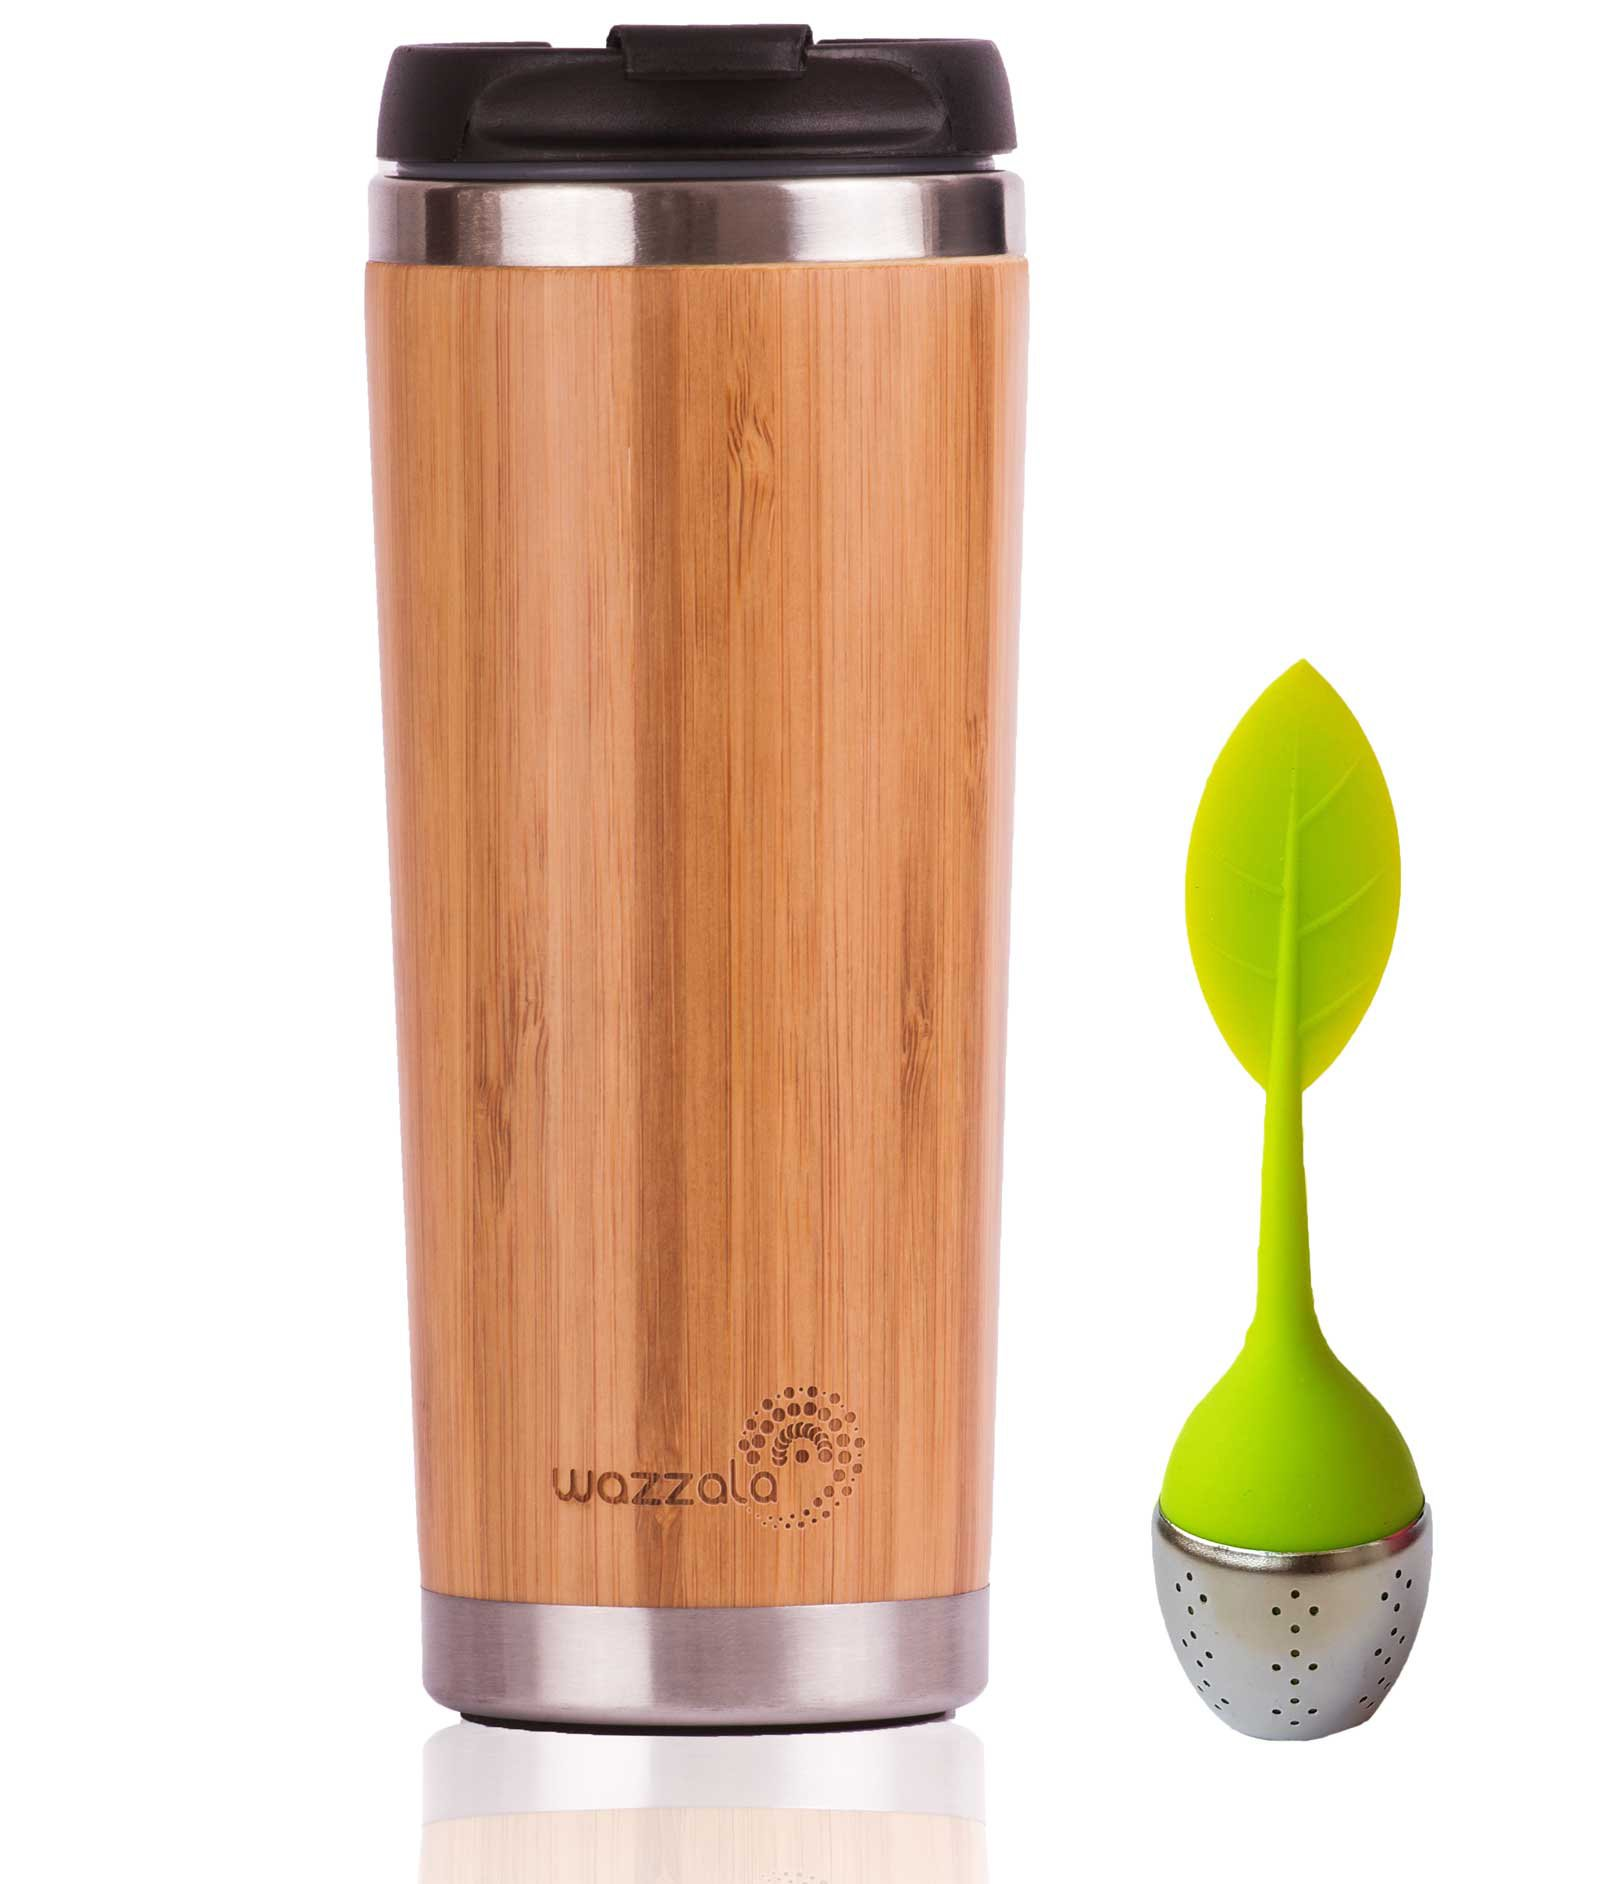 Elegant Reusable Bamboo Eco Travel Mug (Cup) for Coffee or Tea | Splash-Proof, Easy to Clean Lid | Silicone Tea Infuser Included (14 Oz) by Wazzala